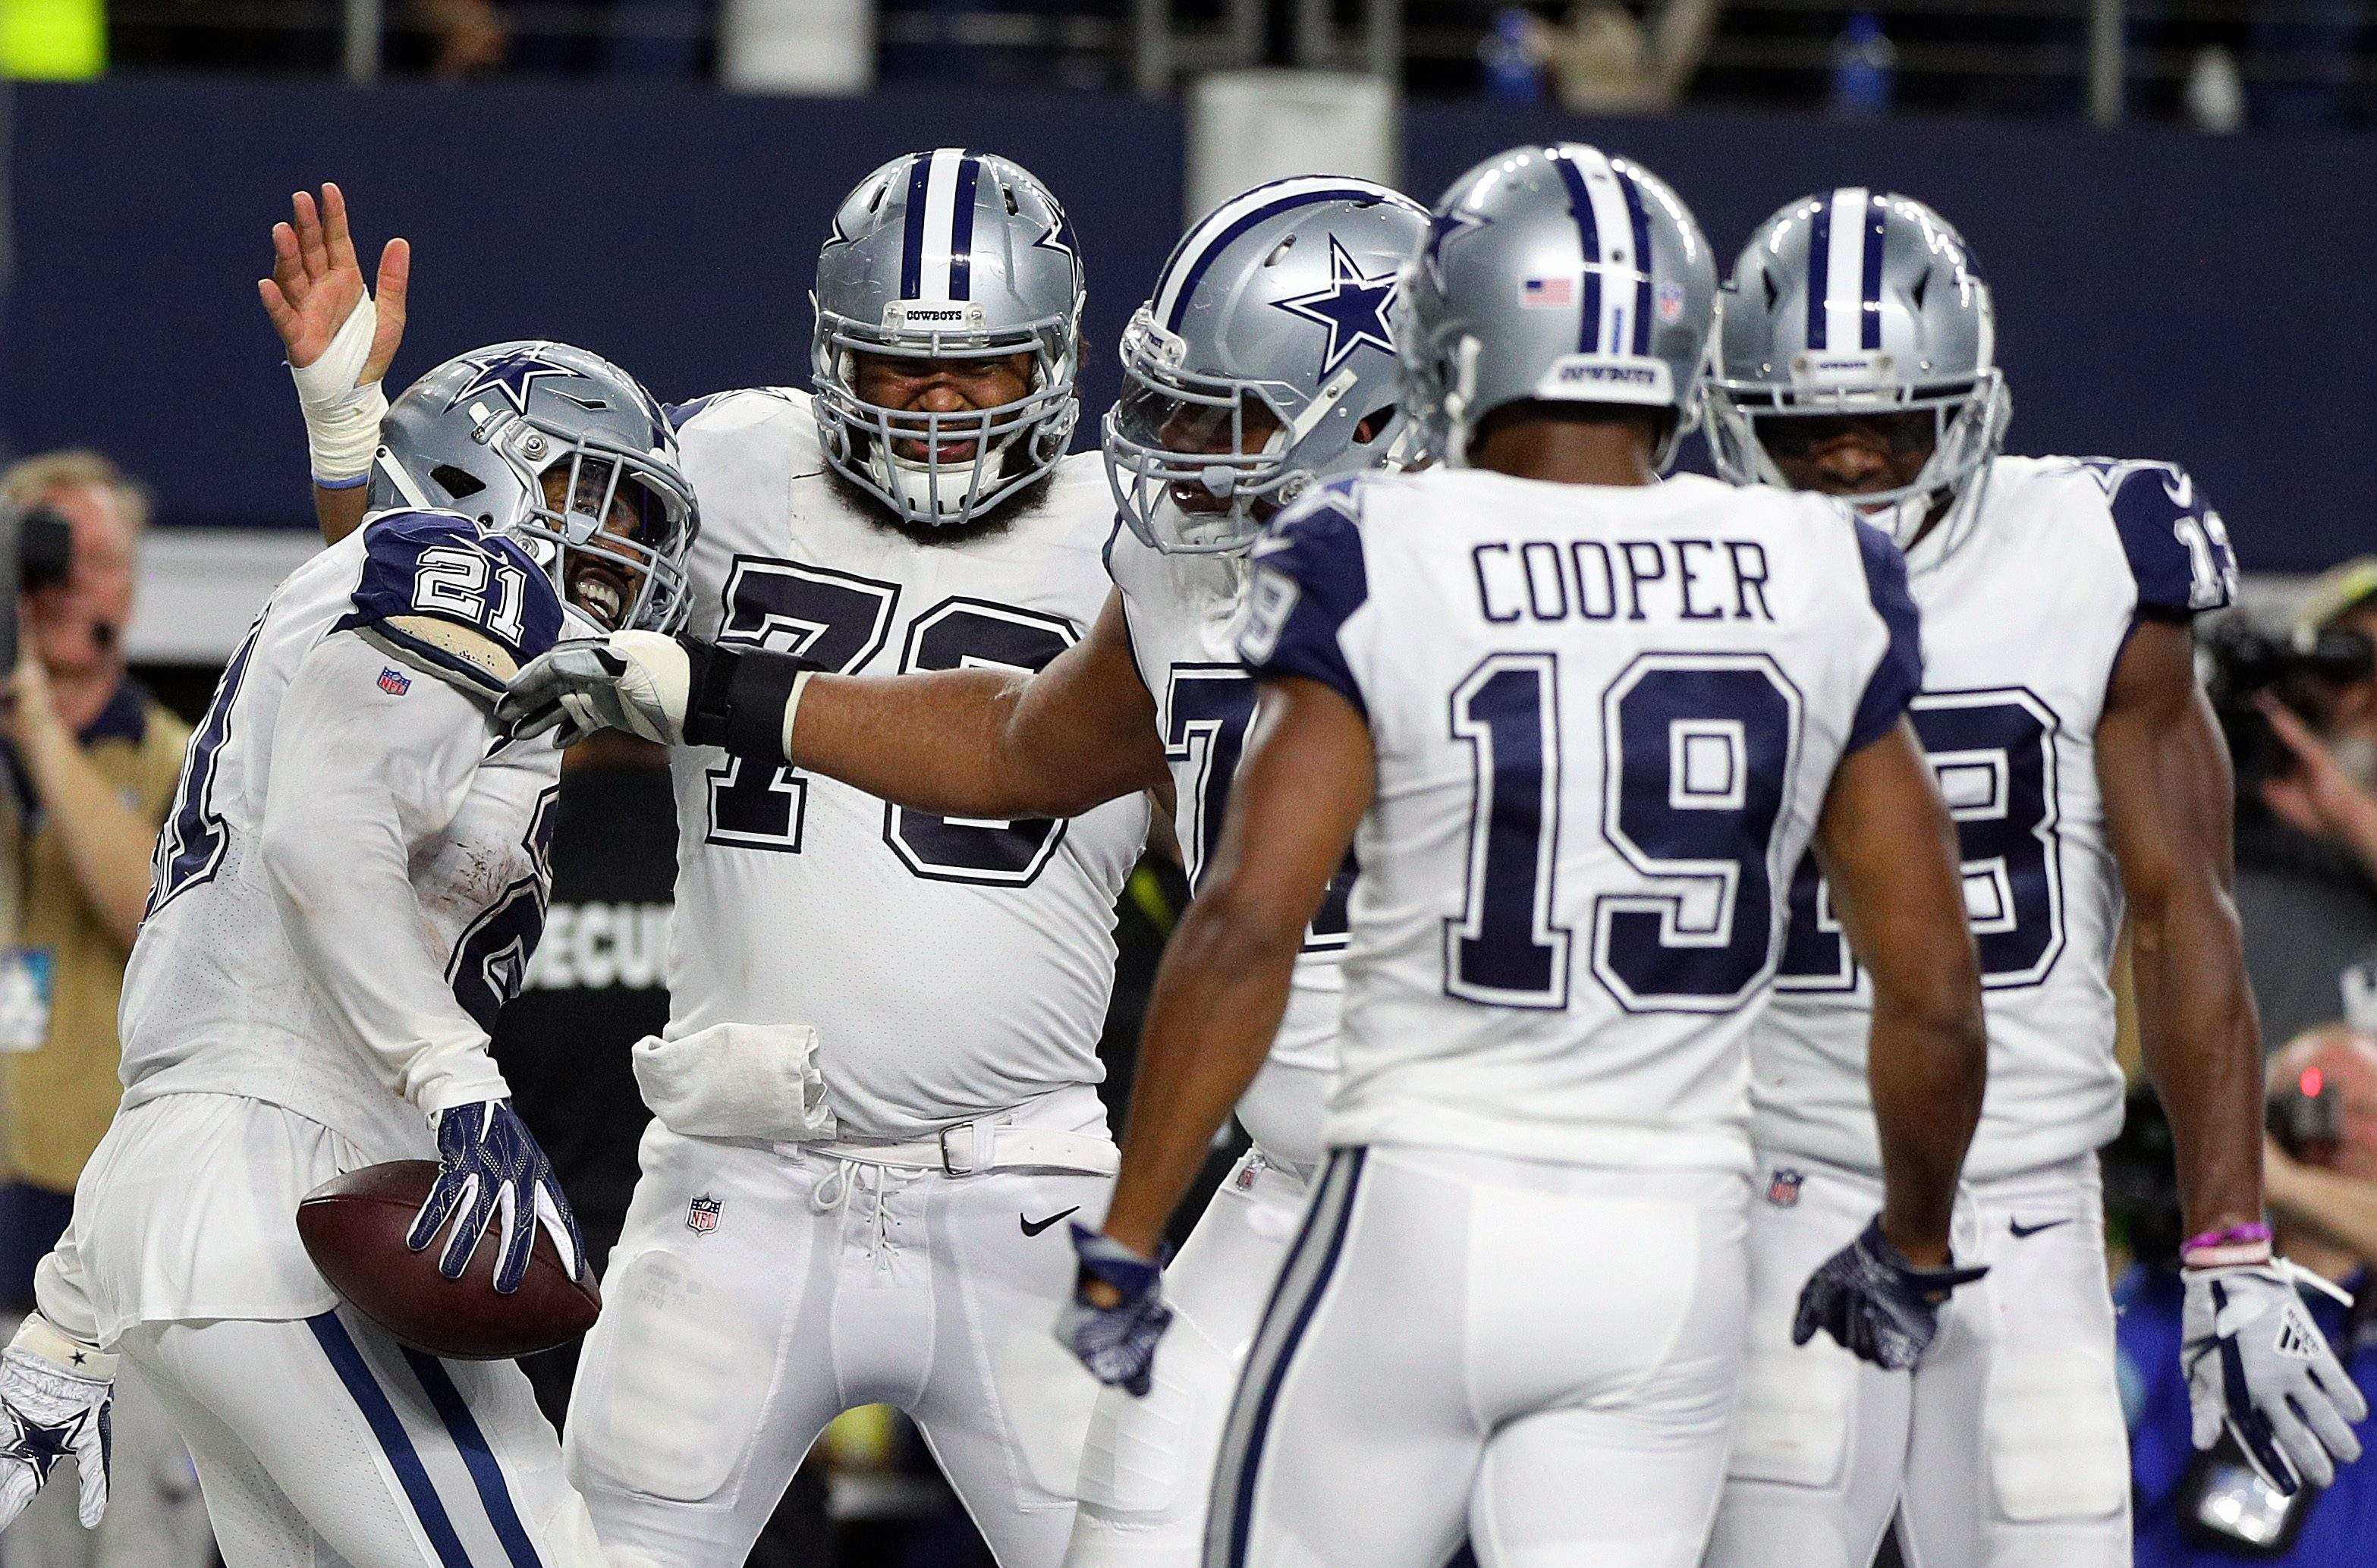 Mauriciorodriguez_star-blog_cowboys-en-espanol-victoria-defensiva-ante-saints-que-sigue